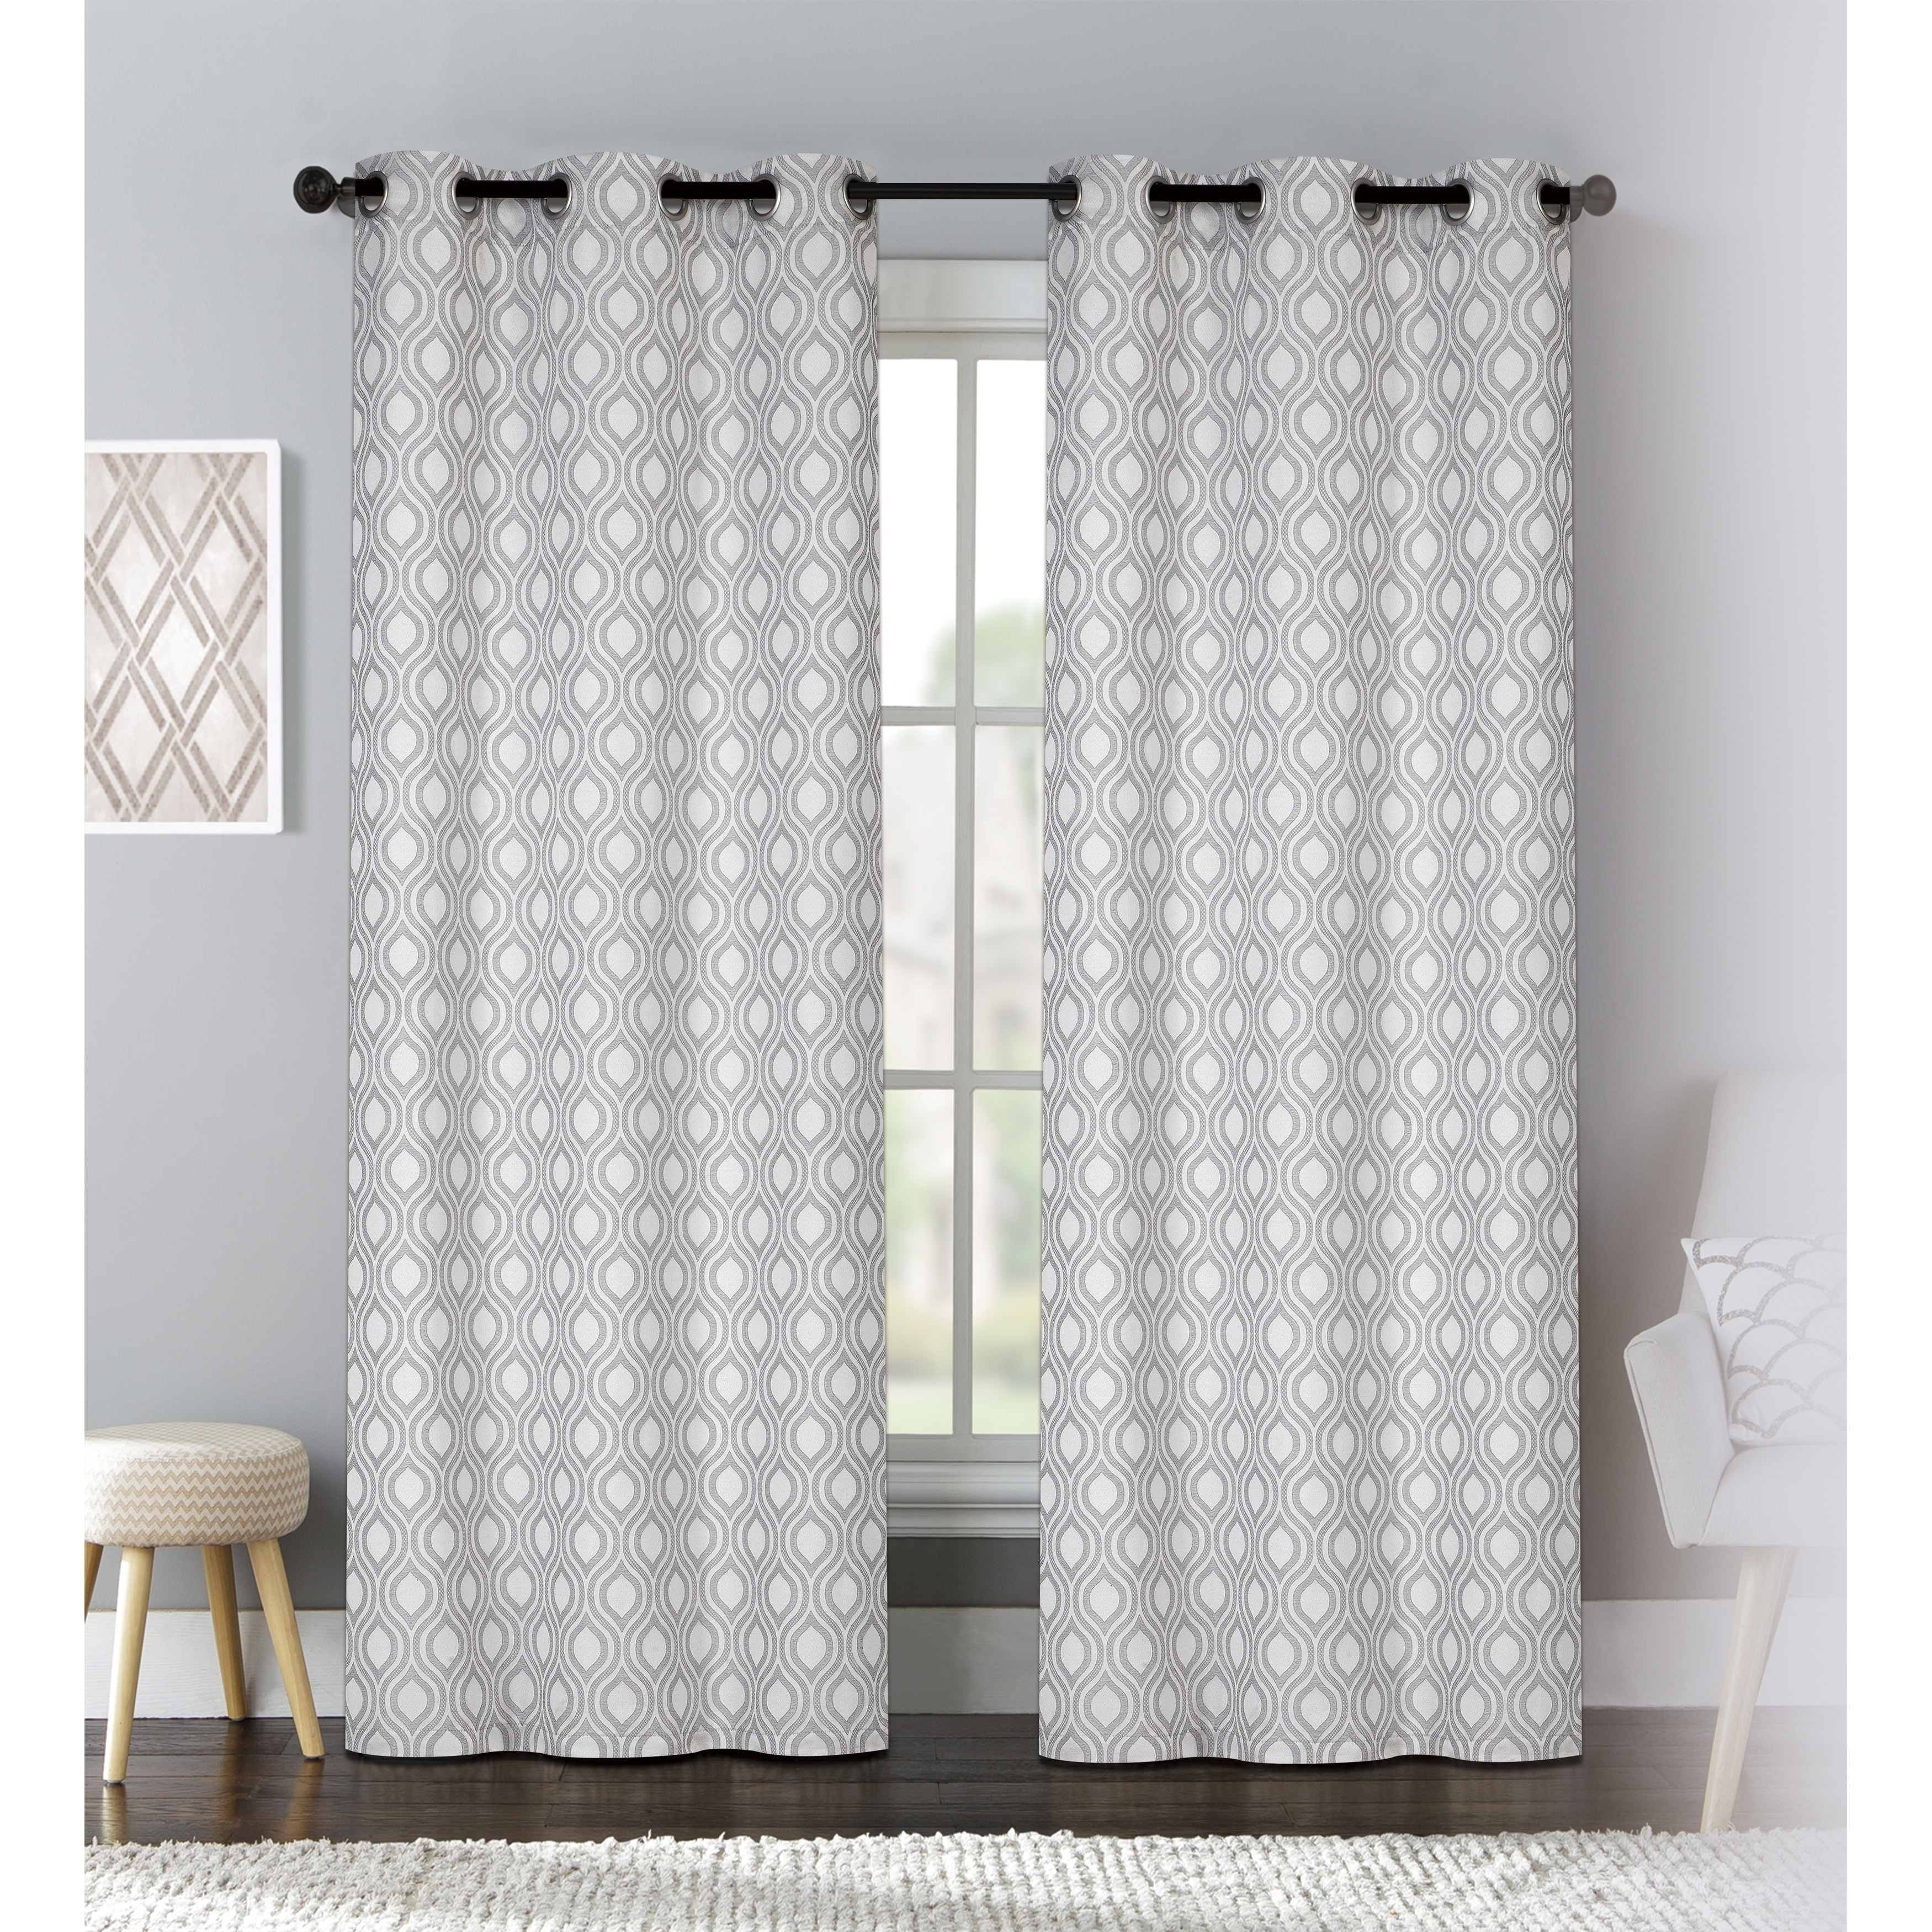 95 Curtain Panels Best Home Decorating Ideas